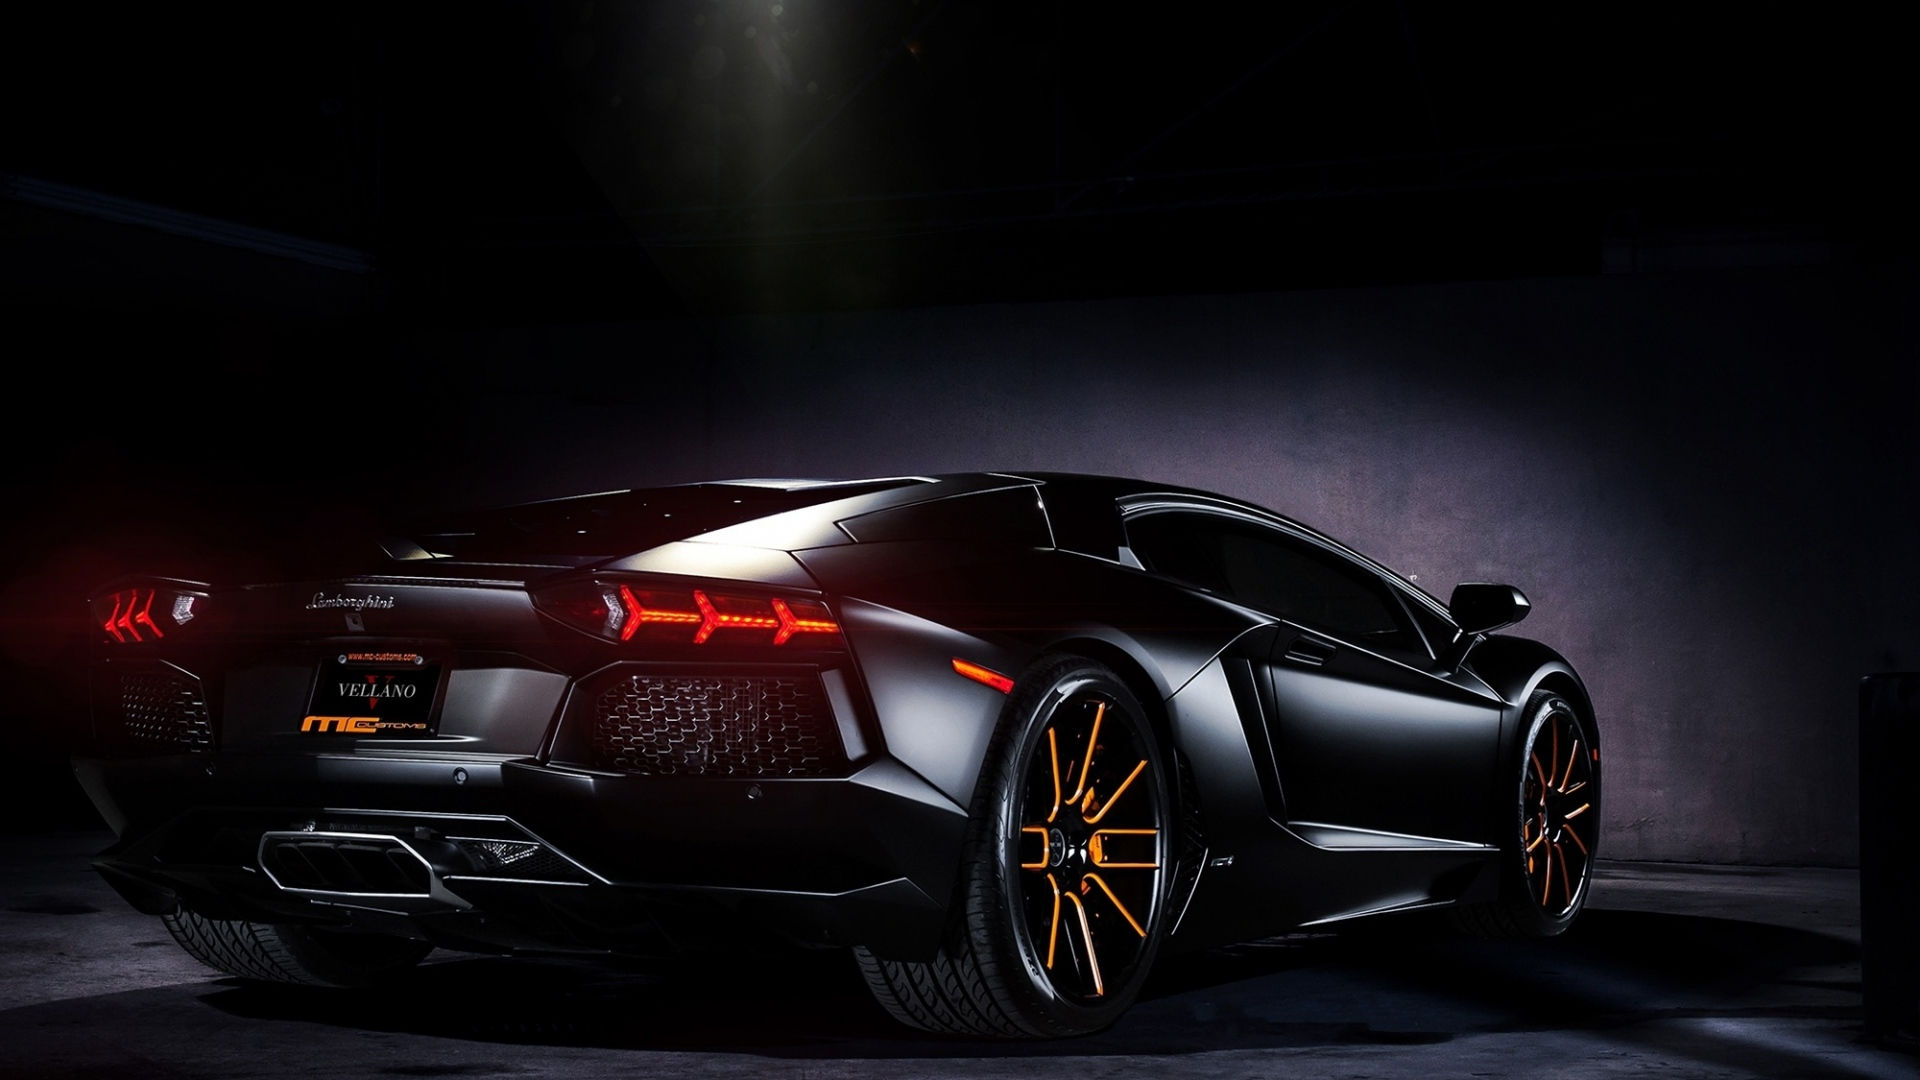 Black Aventador Lamborghini Wallpaper